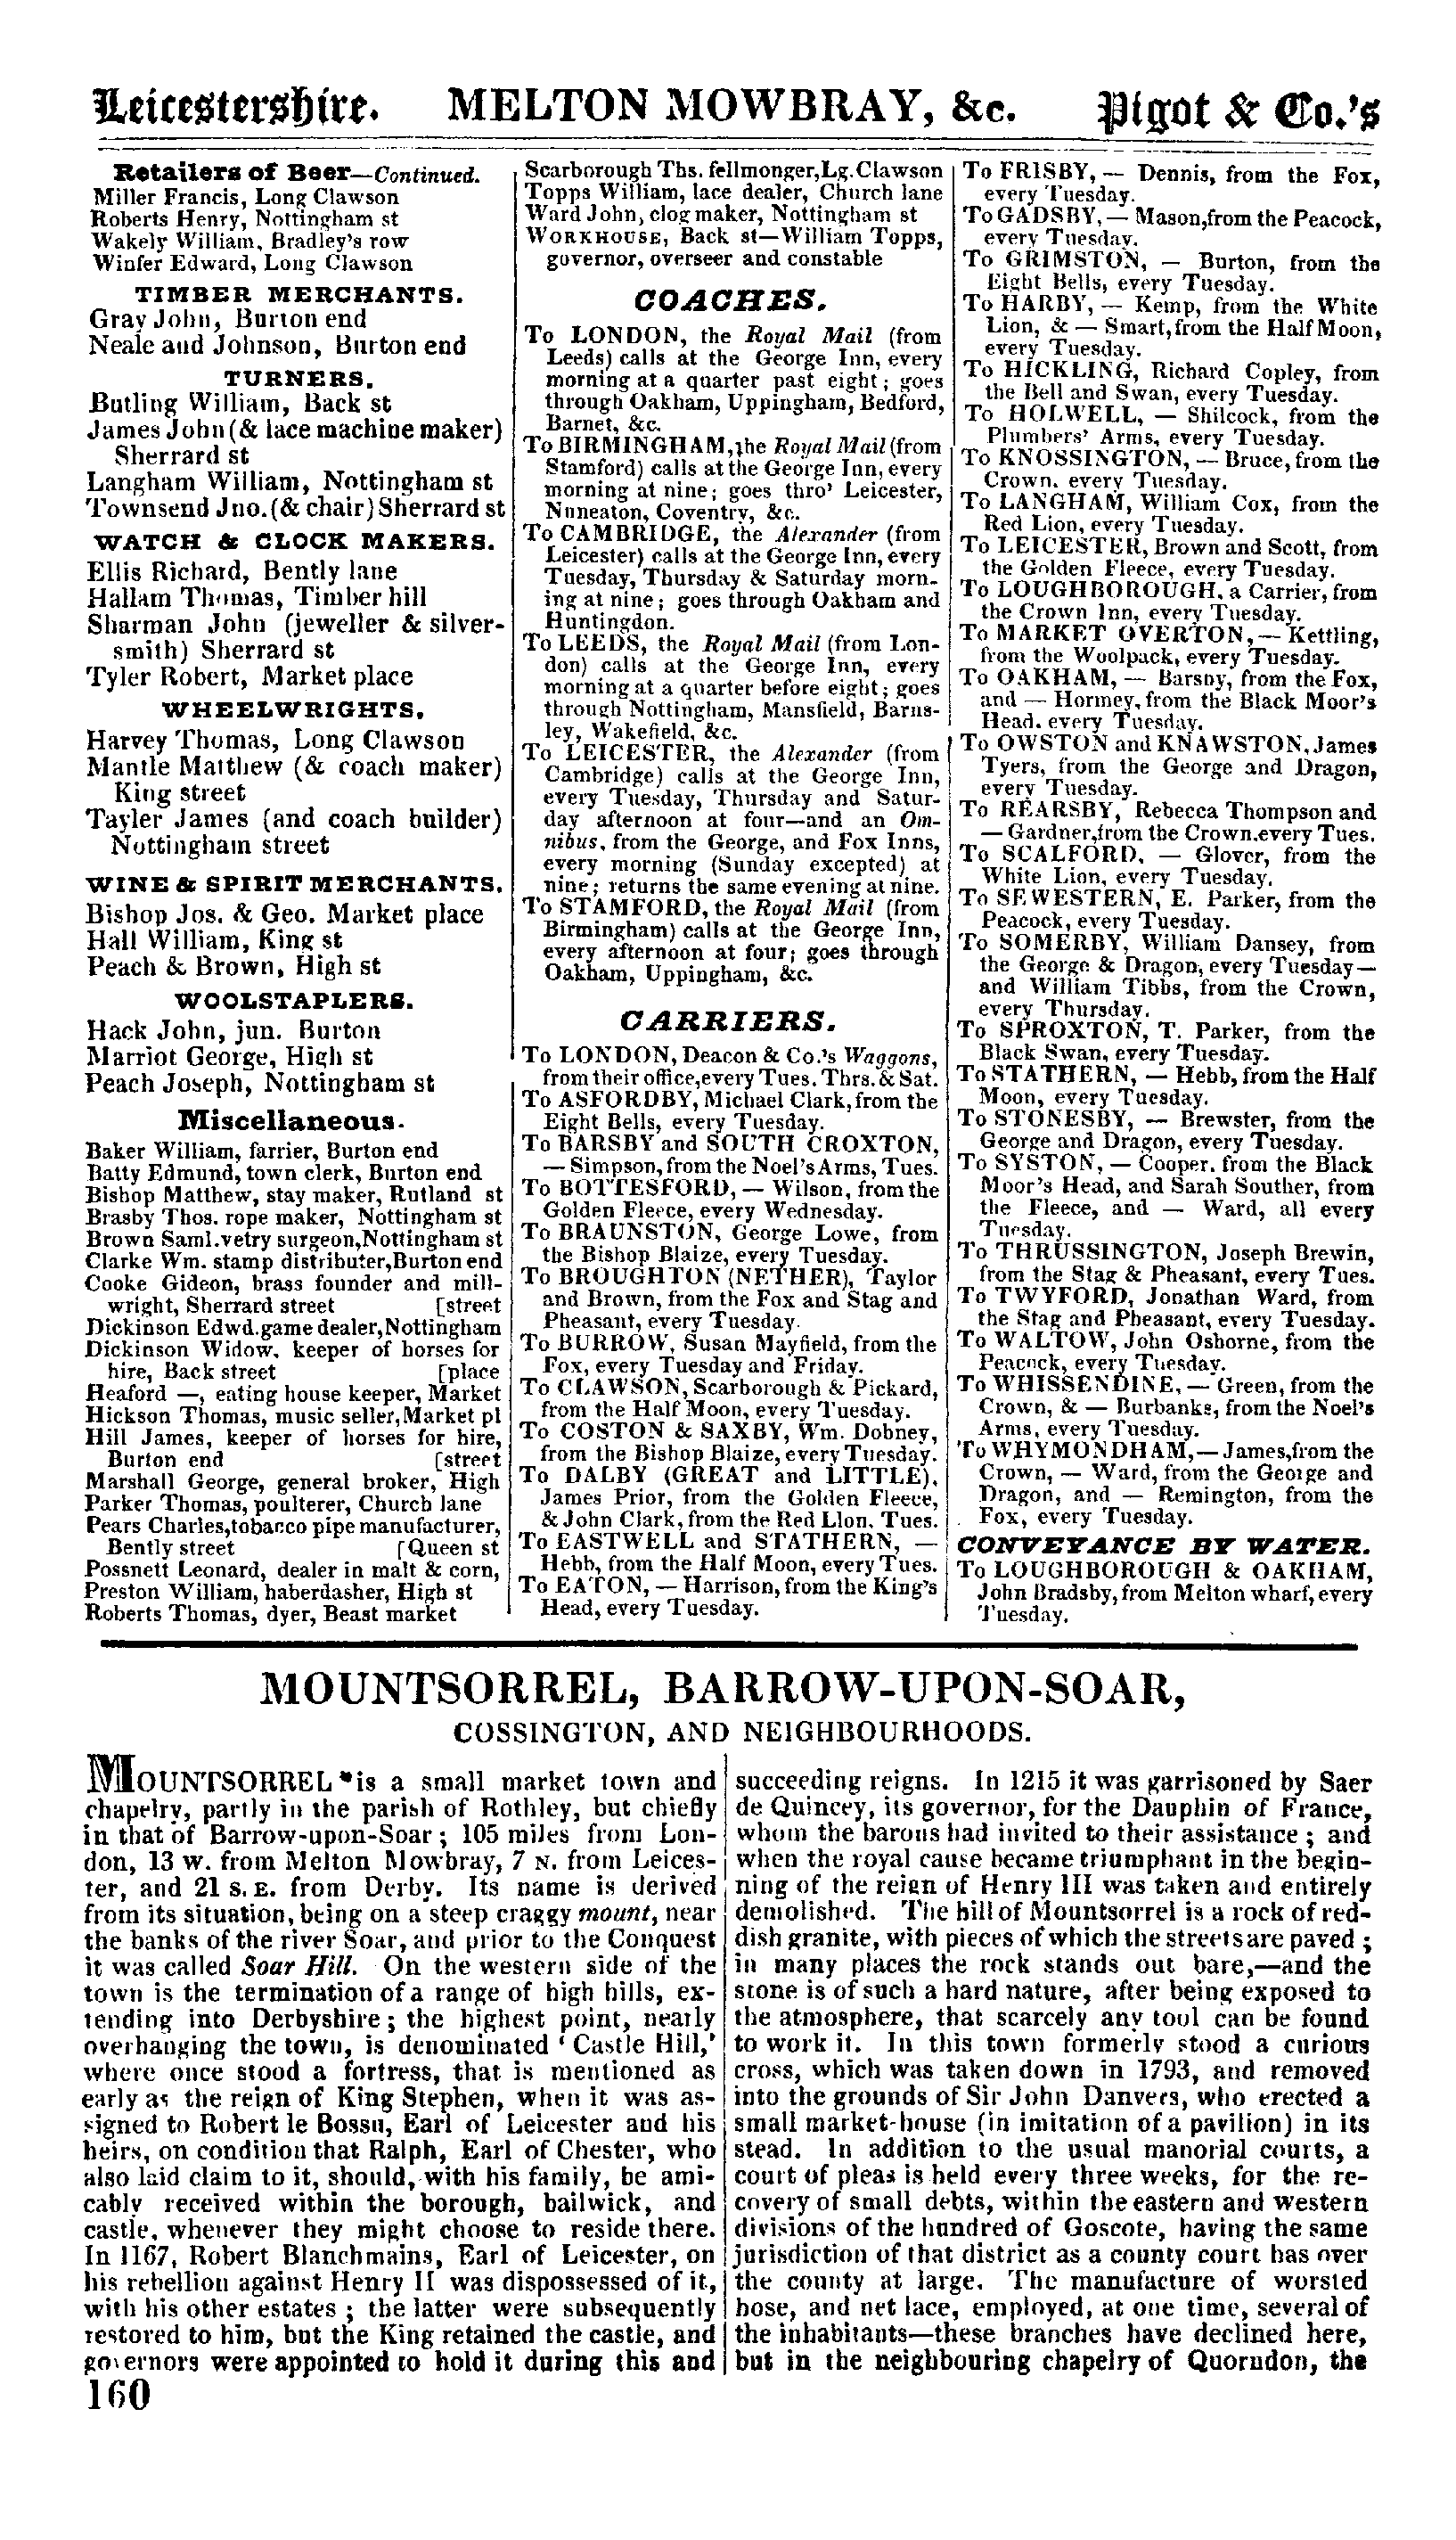 Pigot and Co.'s Directory of Leicestershire and Rutland, 1835 page 160 - click to open larger version in a new window